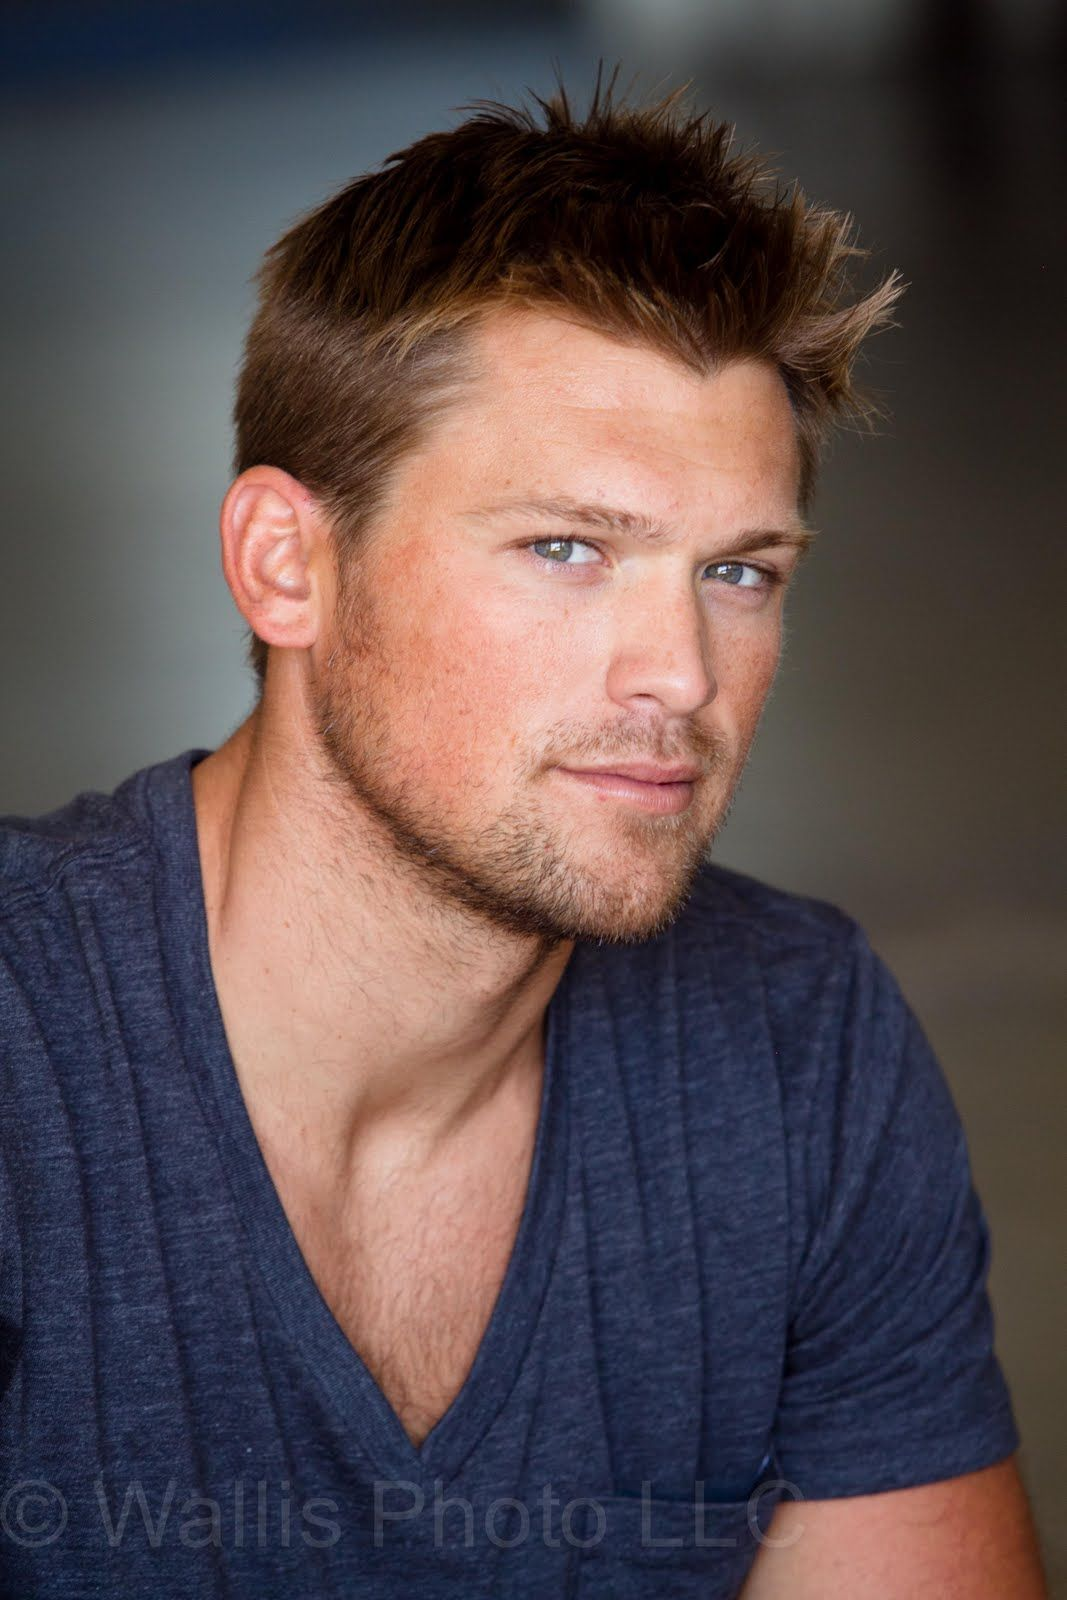 Haircut for men all angles actor headshots  google search angle  awesome photographs